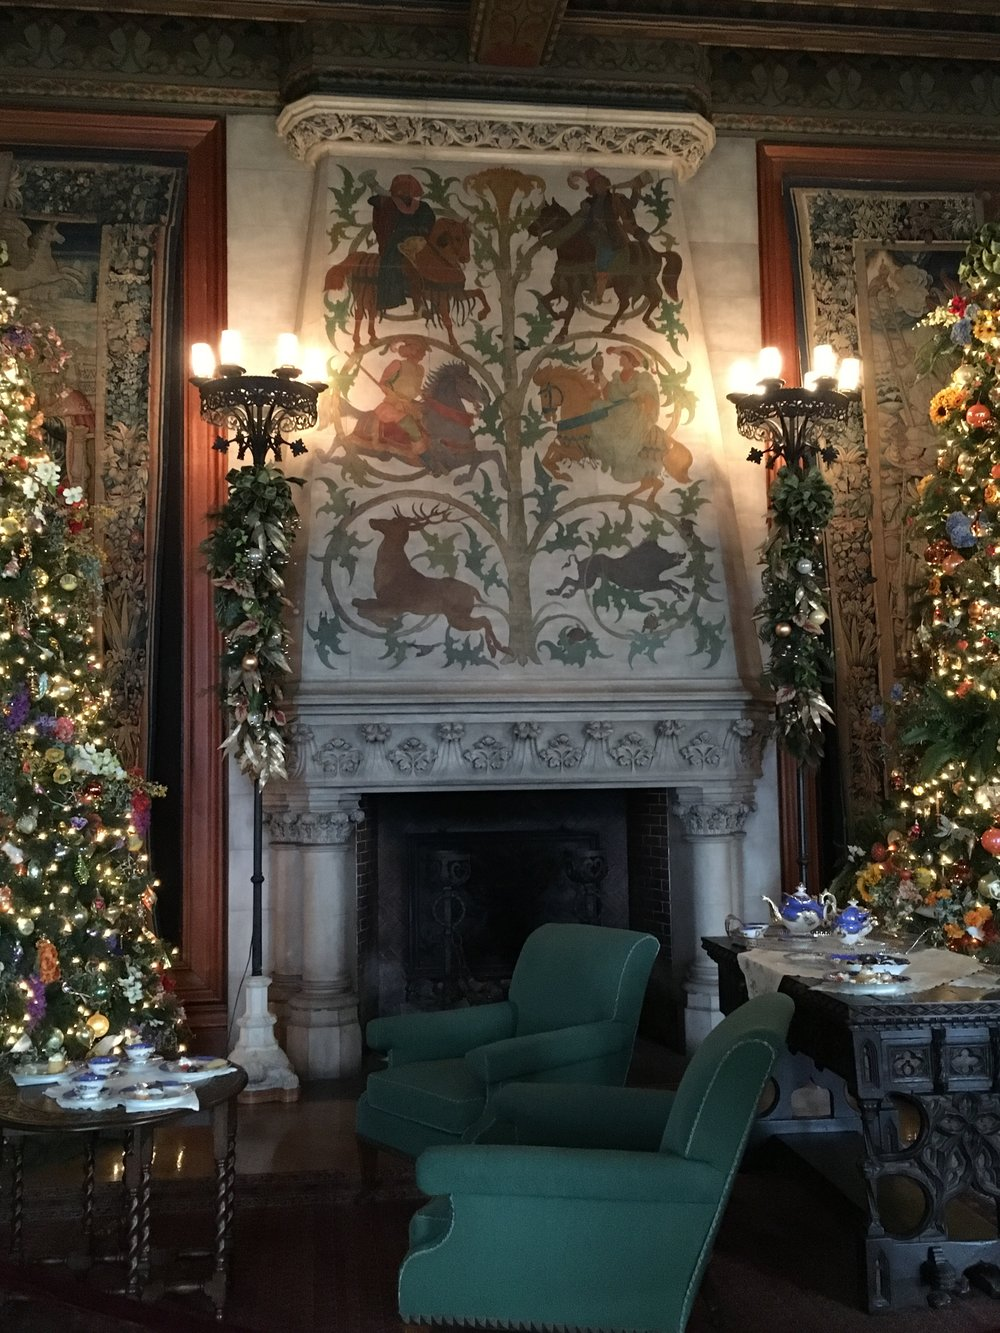 One of many beautifully decorated rooms at Biltmore House.